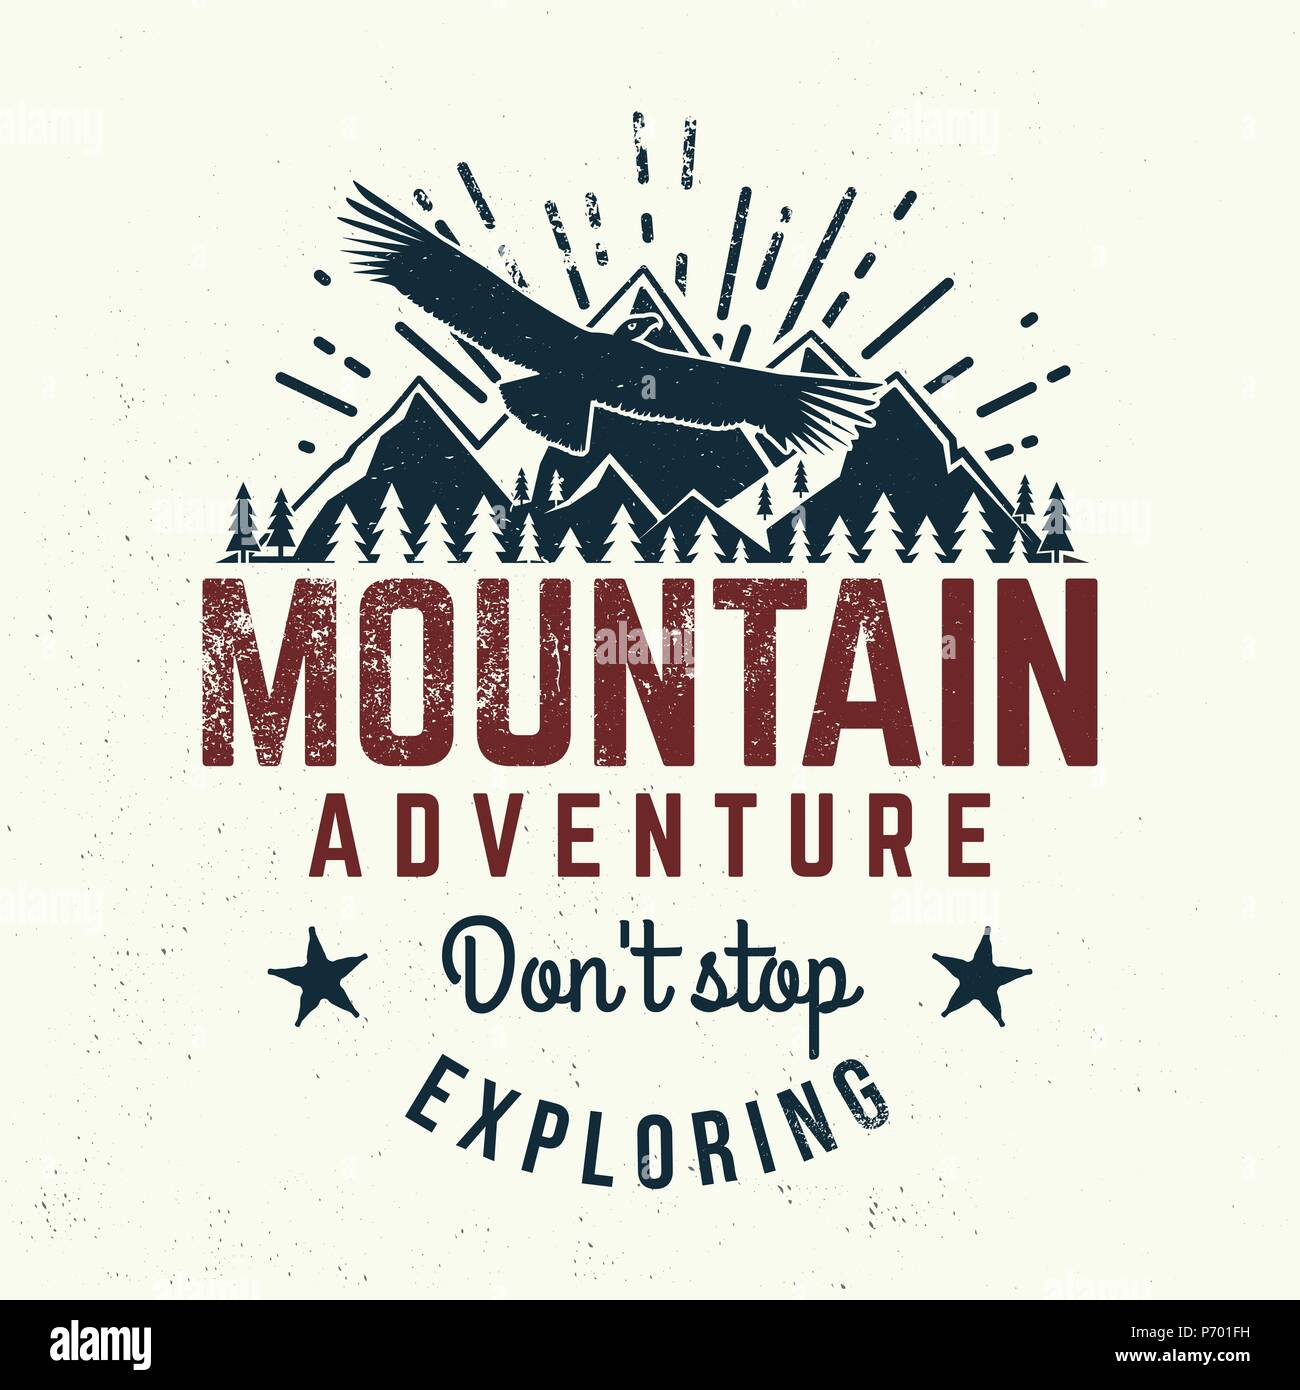 Don't stop exploring. Mountains related typographic quote. Vector illustration. Concept for shirt or logo, print, stamp. - Stock Vector